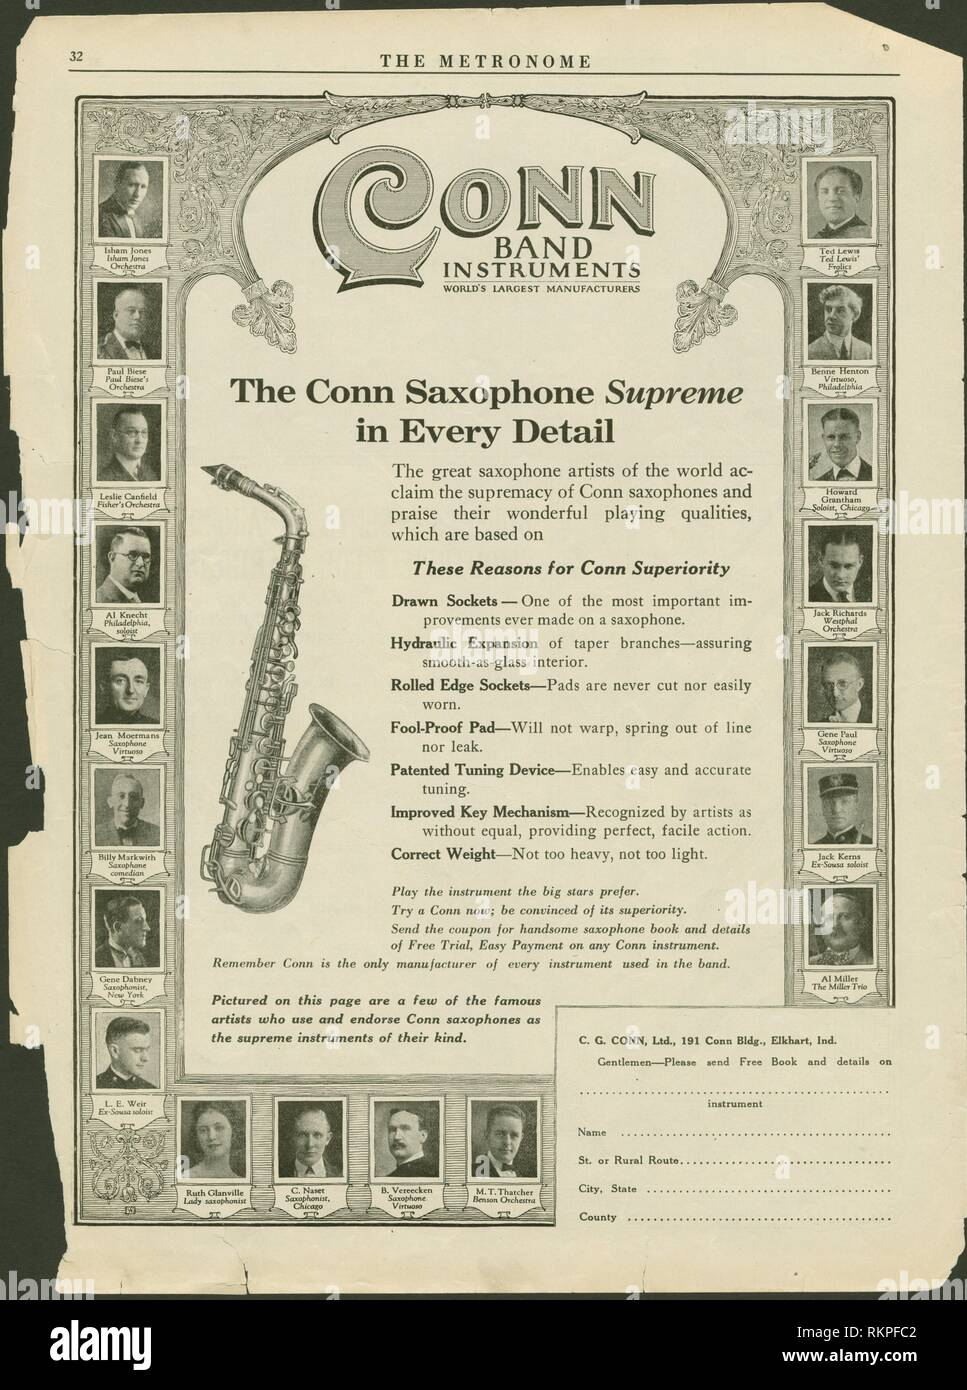 Conn Band Instruments - world's largest manufacturers. The Metronome The metronome, Vol. 40, 1924. Date Issued: 1924-02. Music Bands (Music) Brass - Stock Image